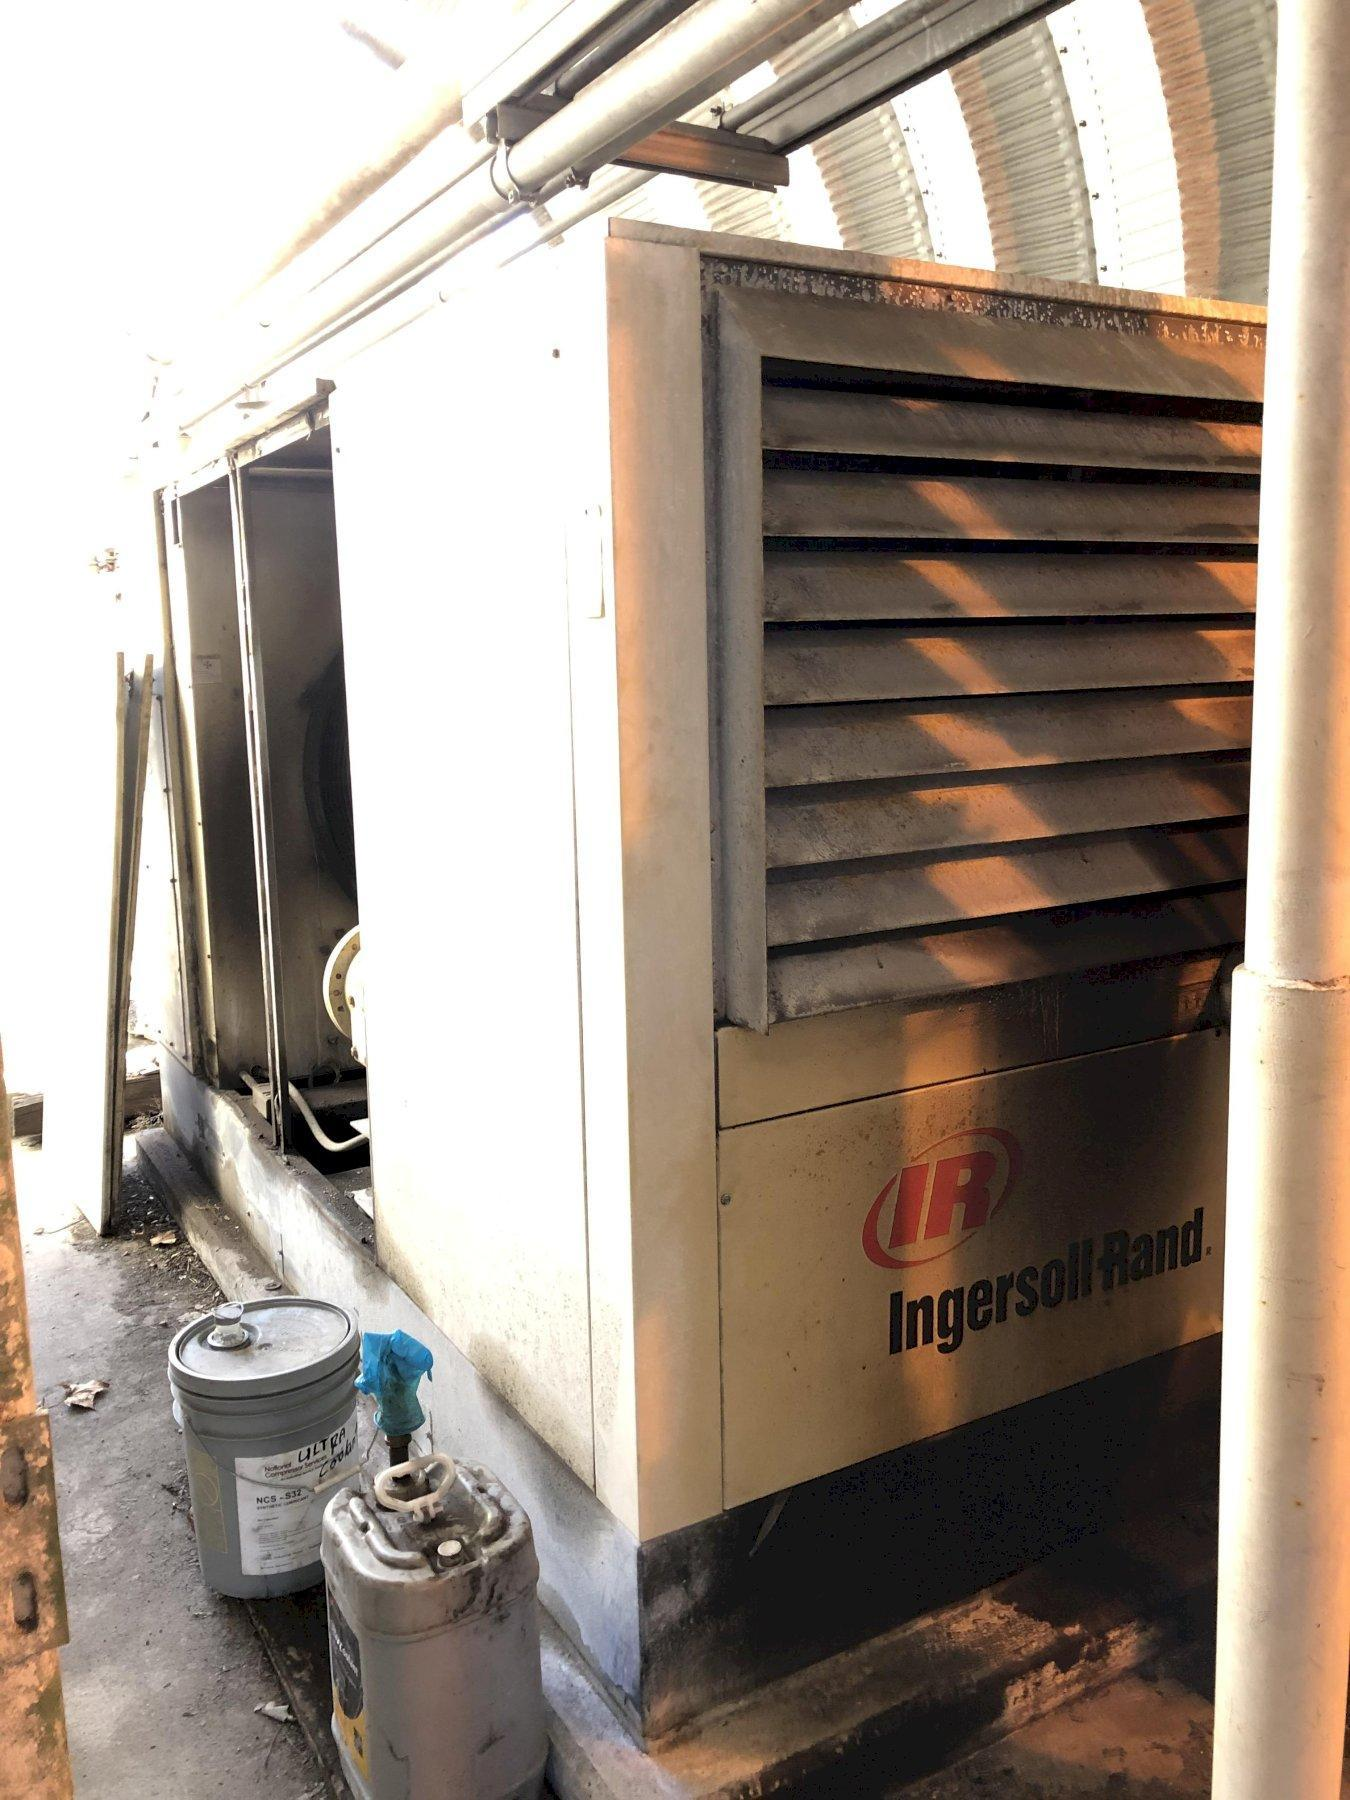 2003 Ingersol Rand model ssr-ep125 screw type air compressor s/n f38712u03122 rated at 125 hp, digital readouts